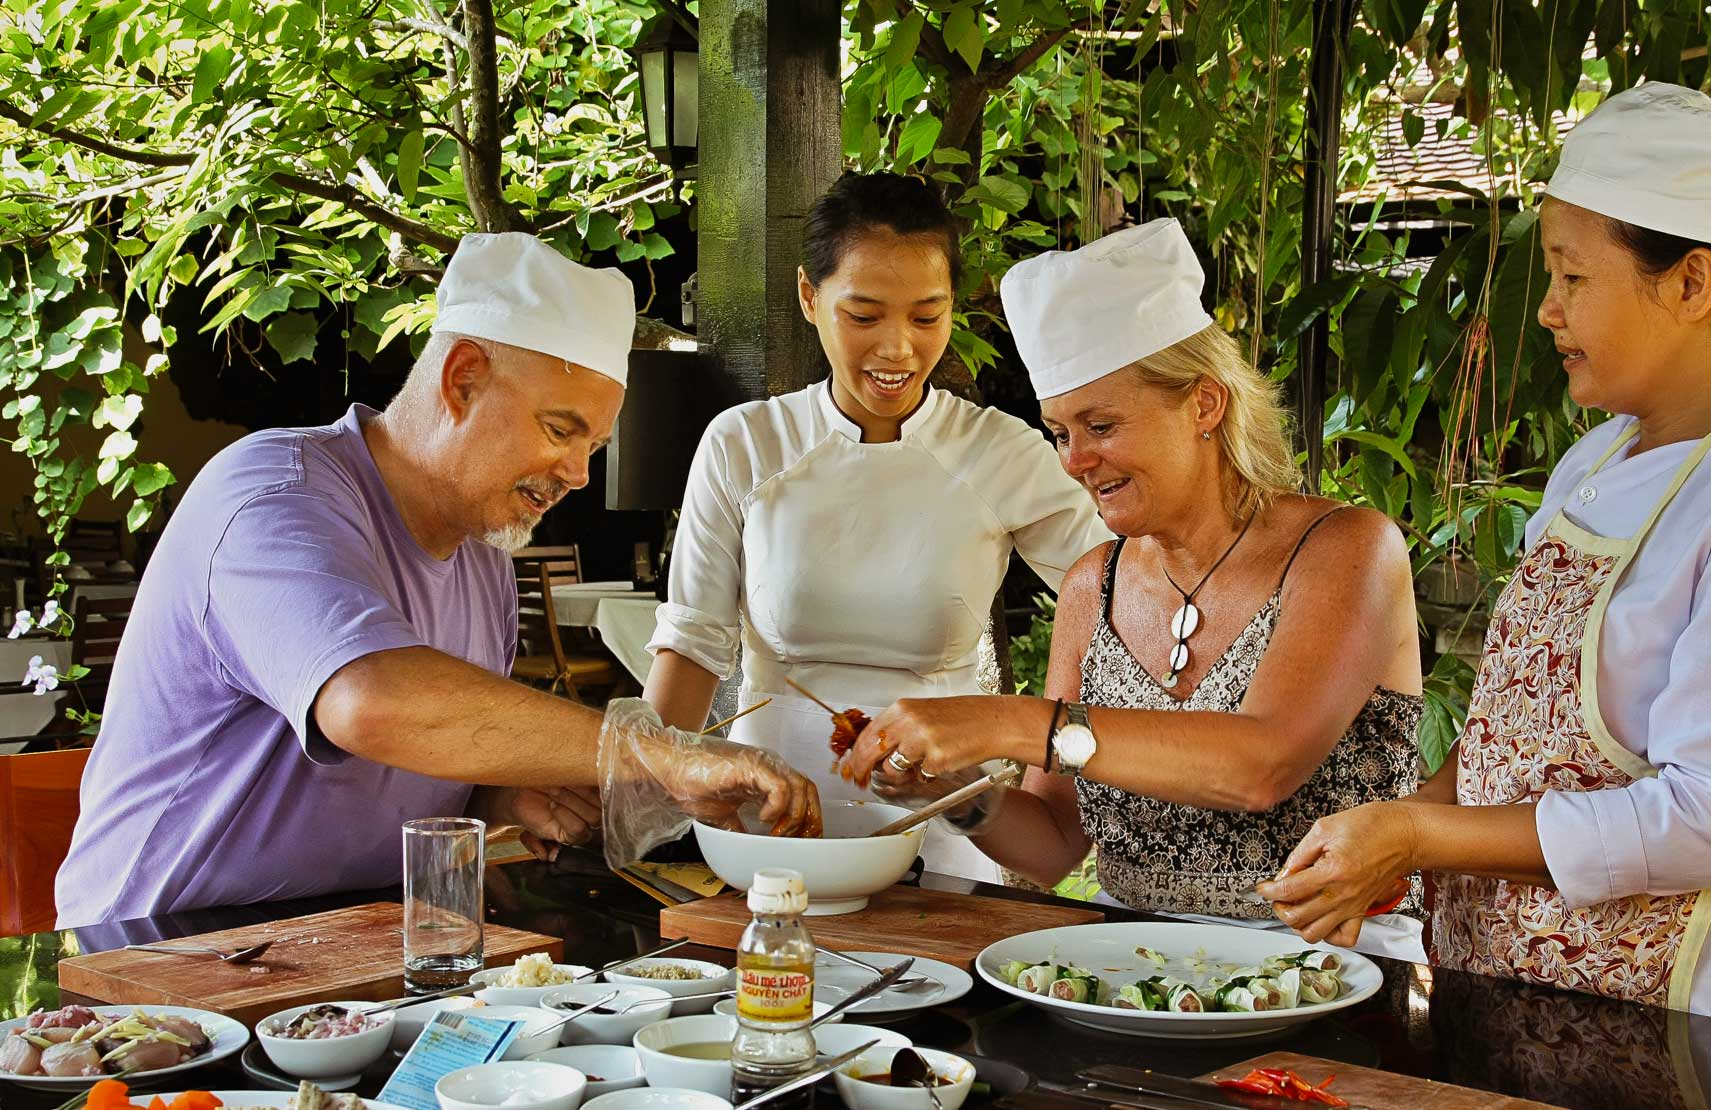 hoi an cooking tour - 10+ Unique & Amazing Things To Do In Hoi An, Vietnam (2021)